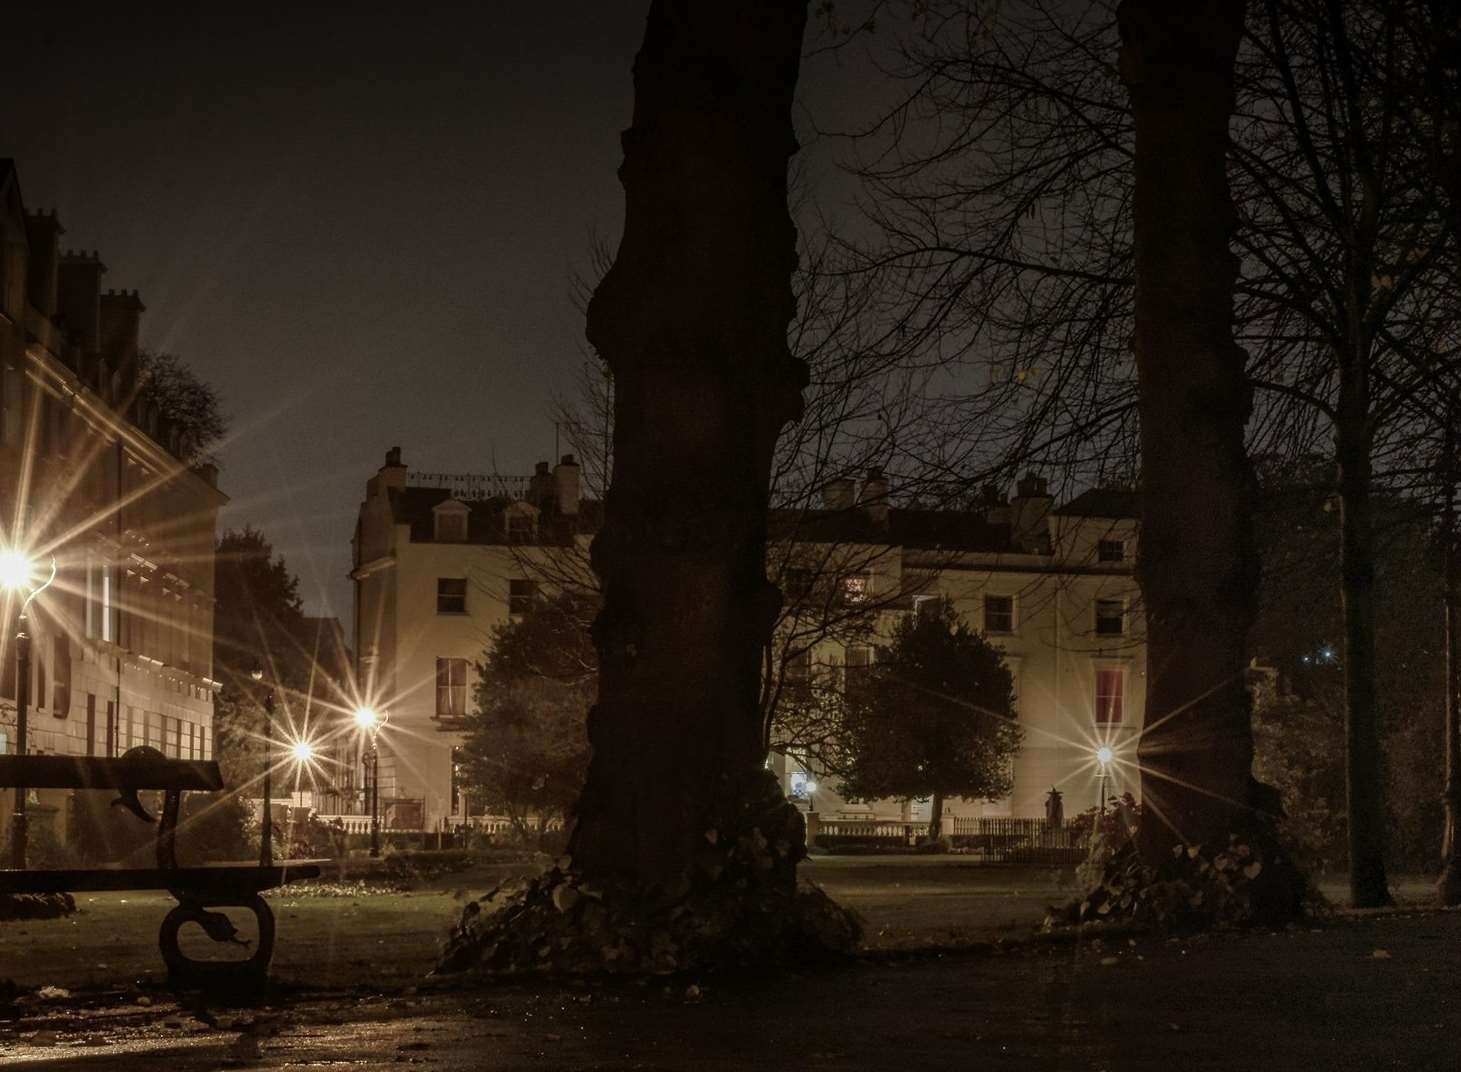 The Dane John Gardens at night. Picture: John Hippisley Photography.